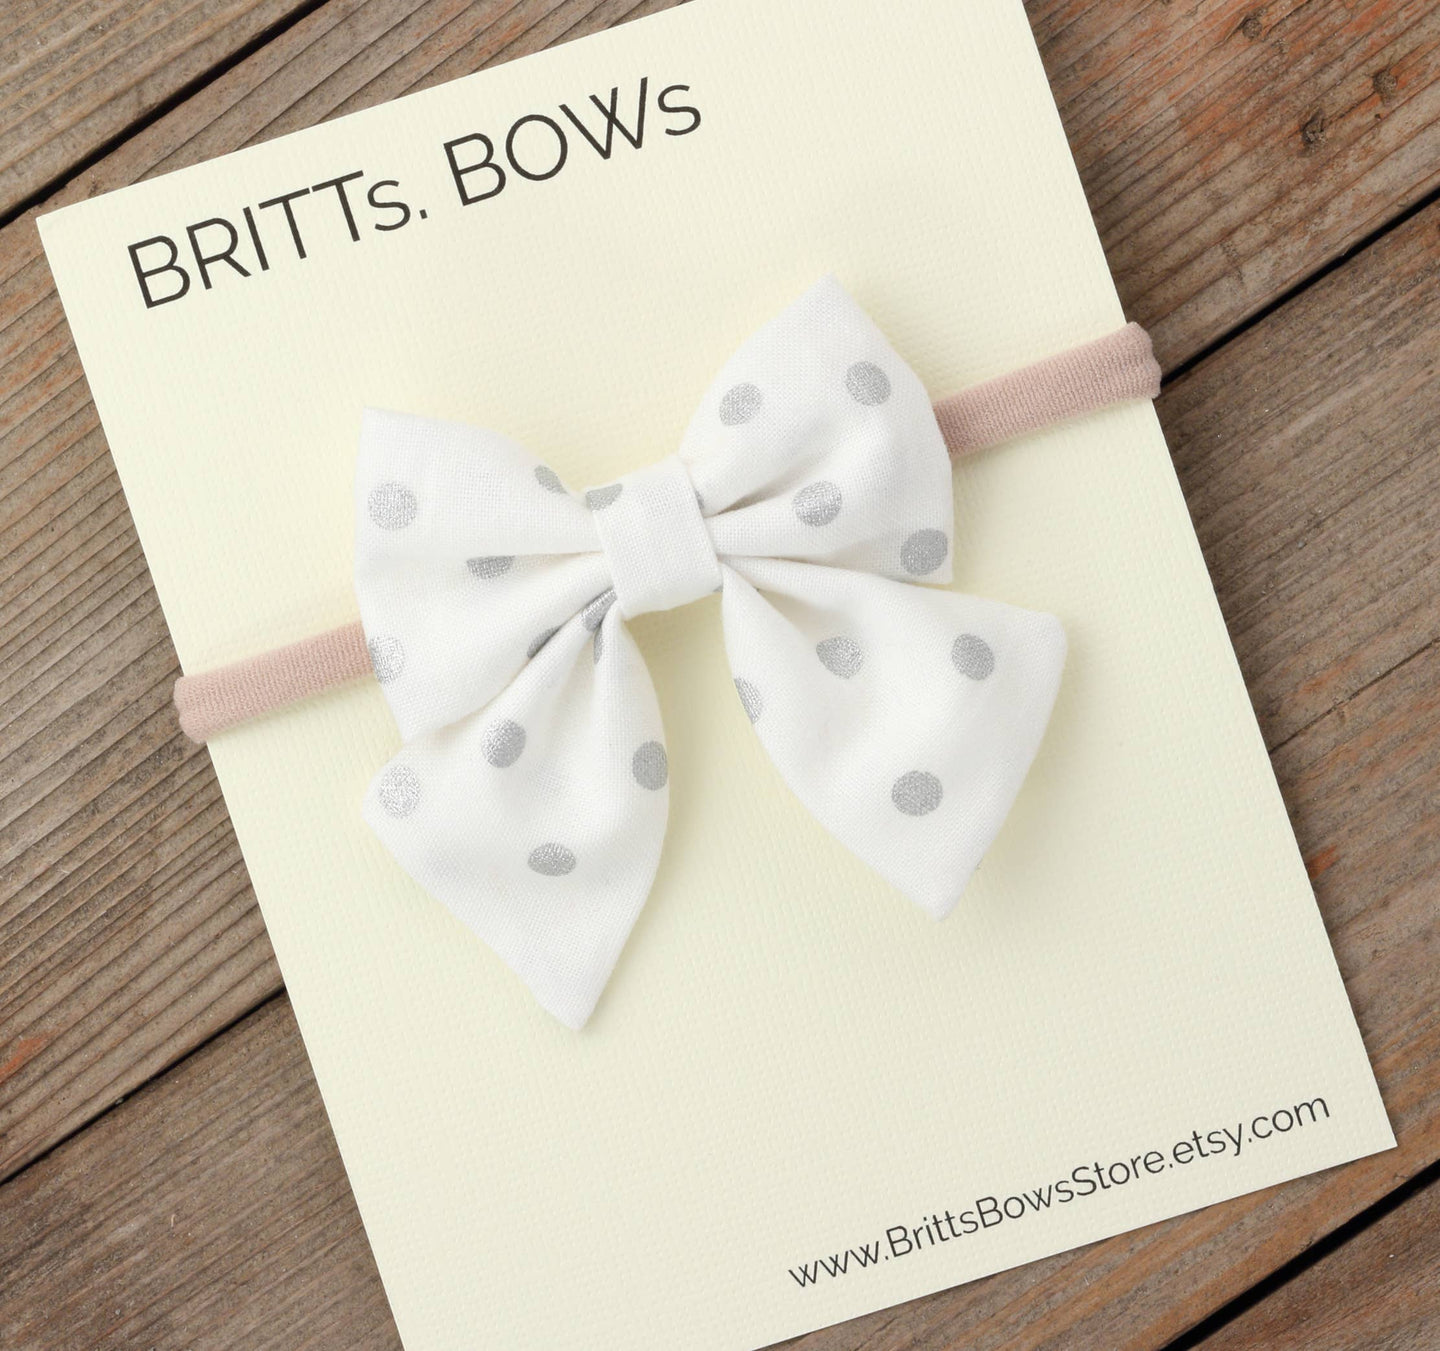 BRITTs. BOWs - White and Silver Dot Baby Bow